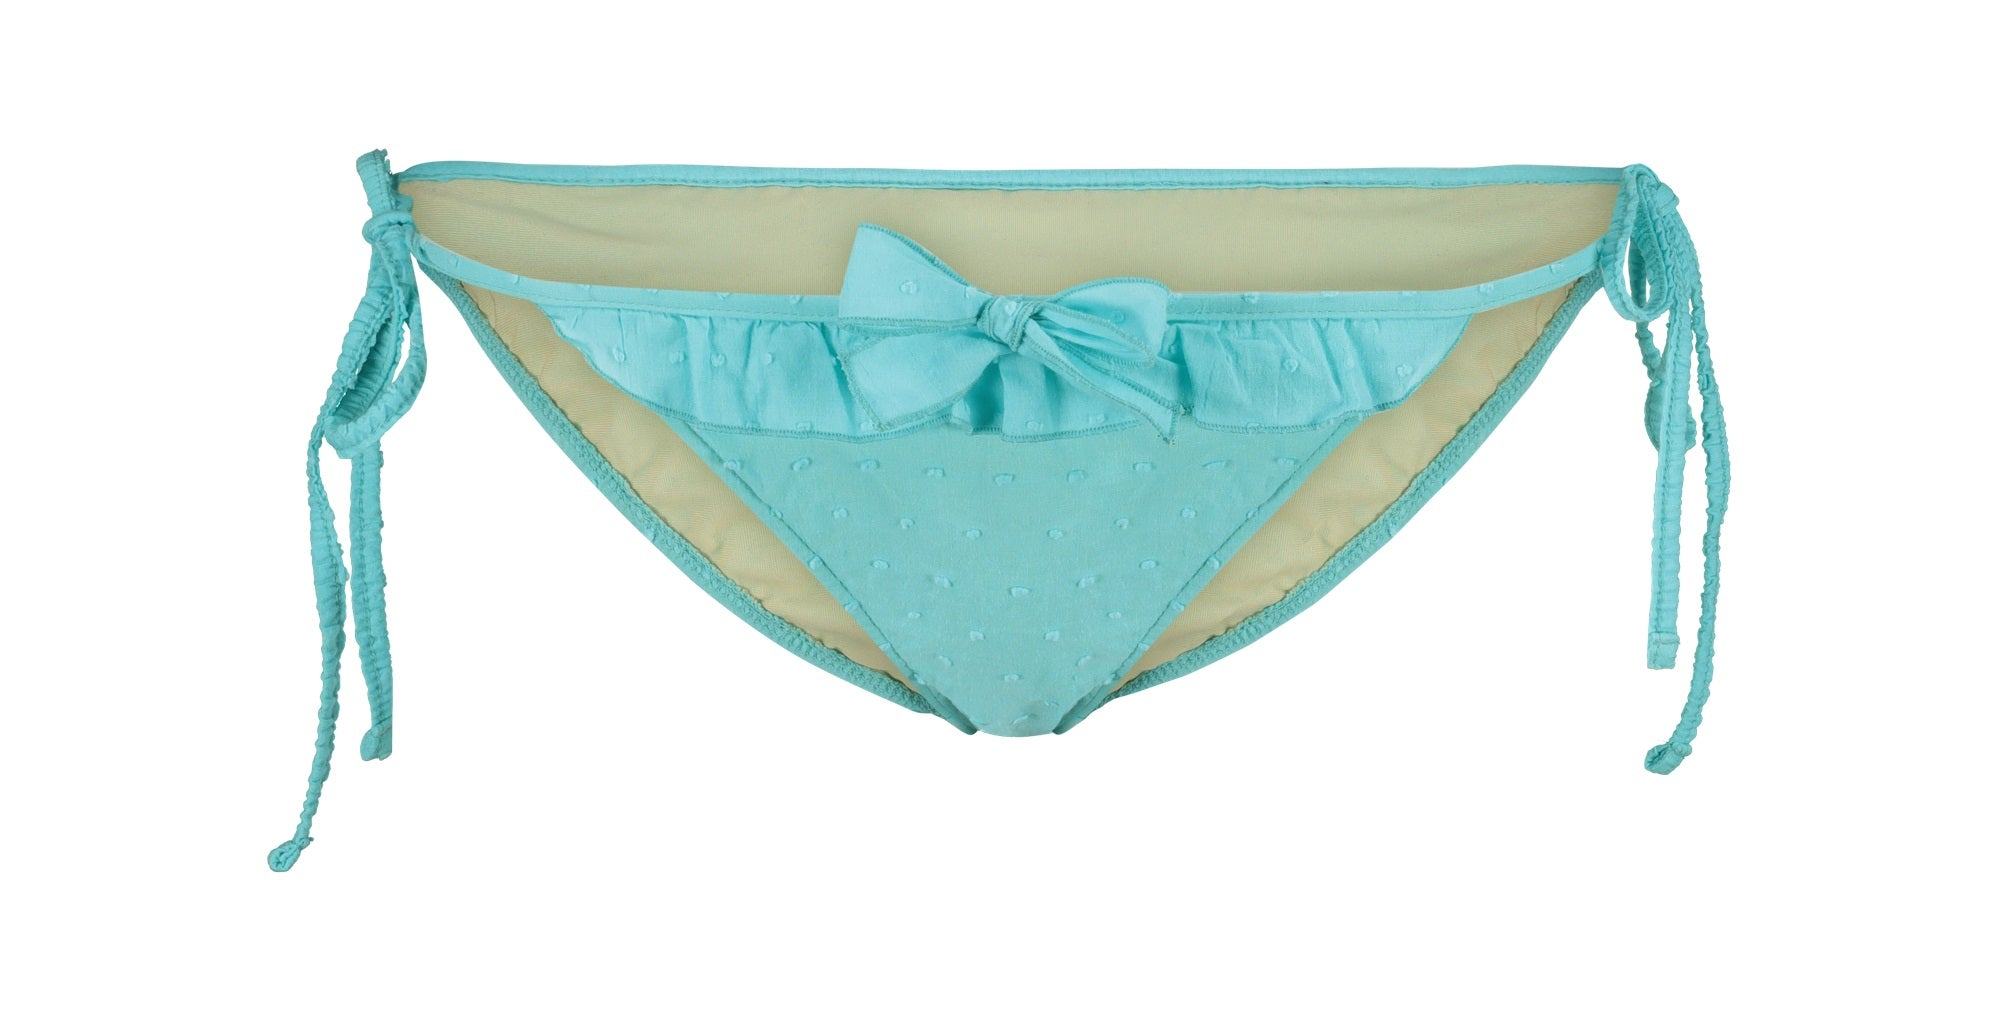 Culotte bikini - My heart belongs to daddy